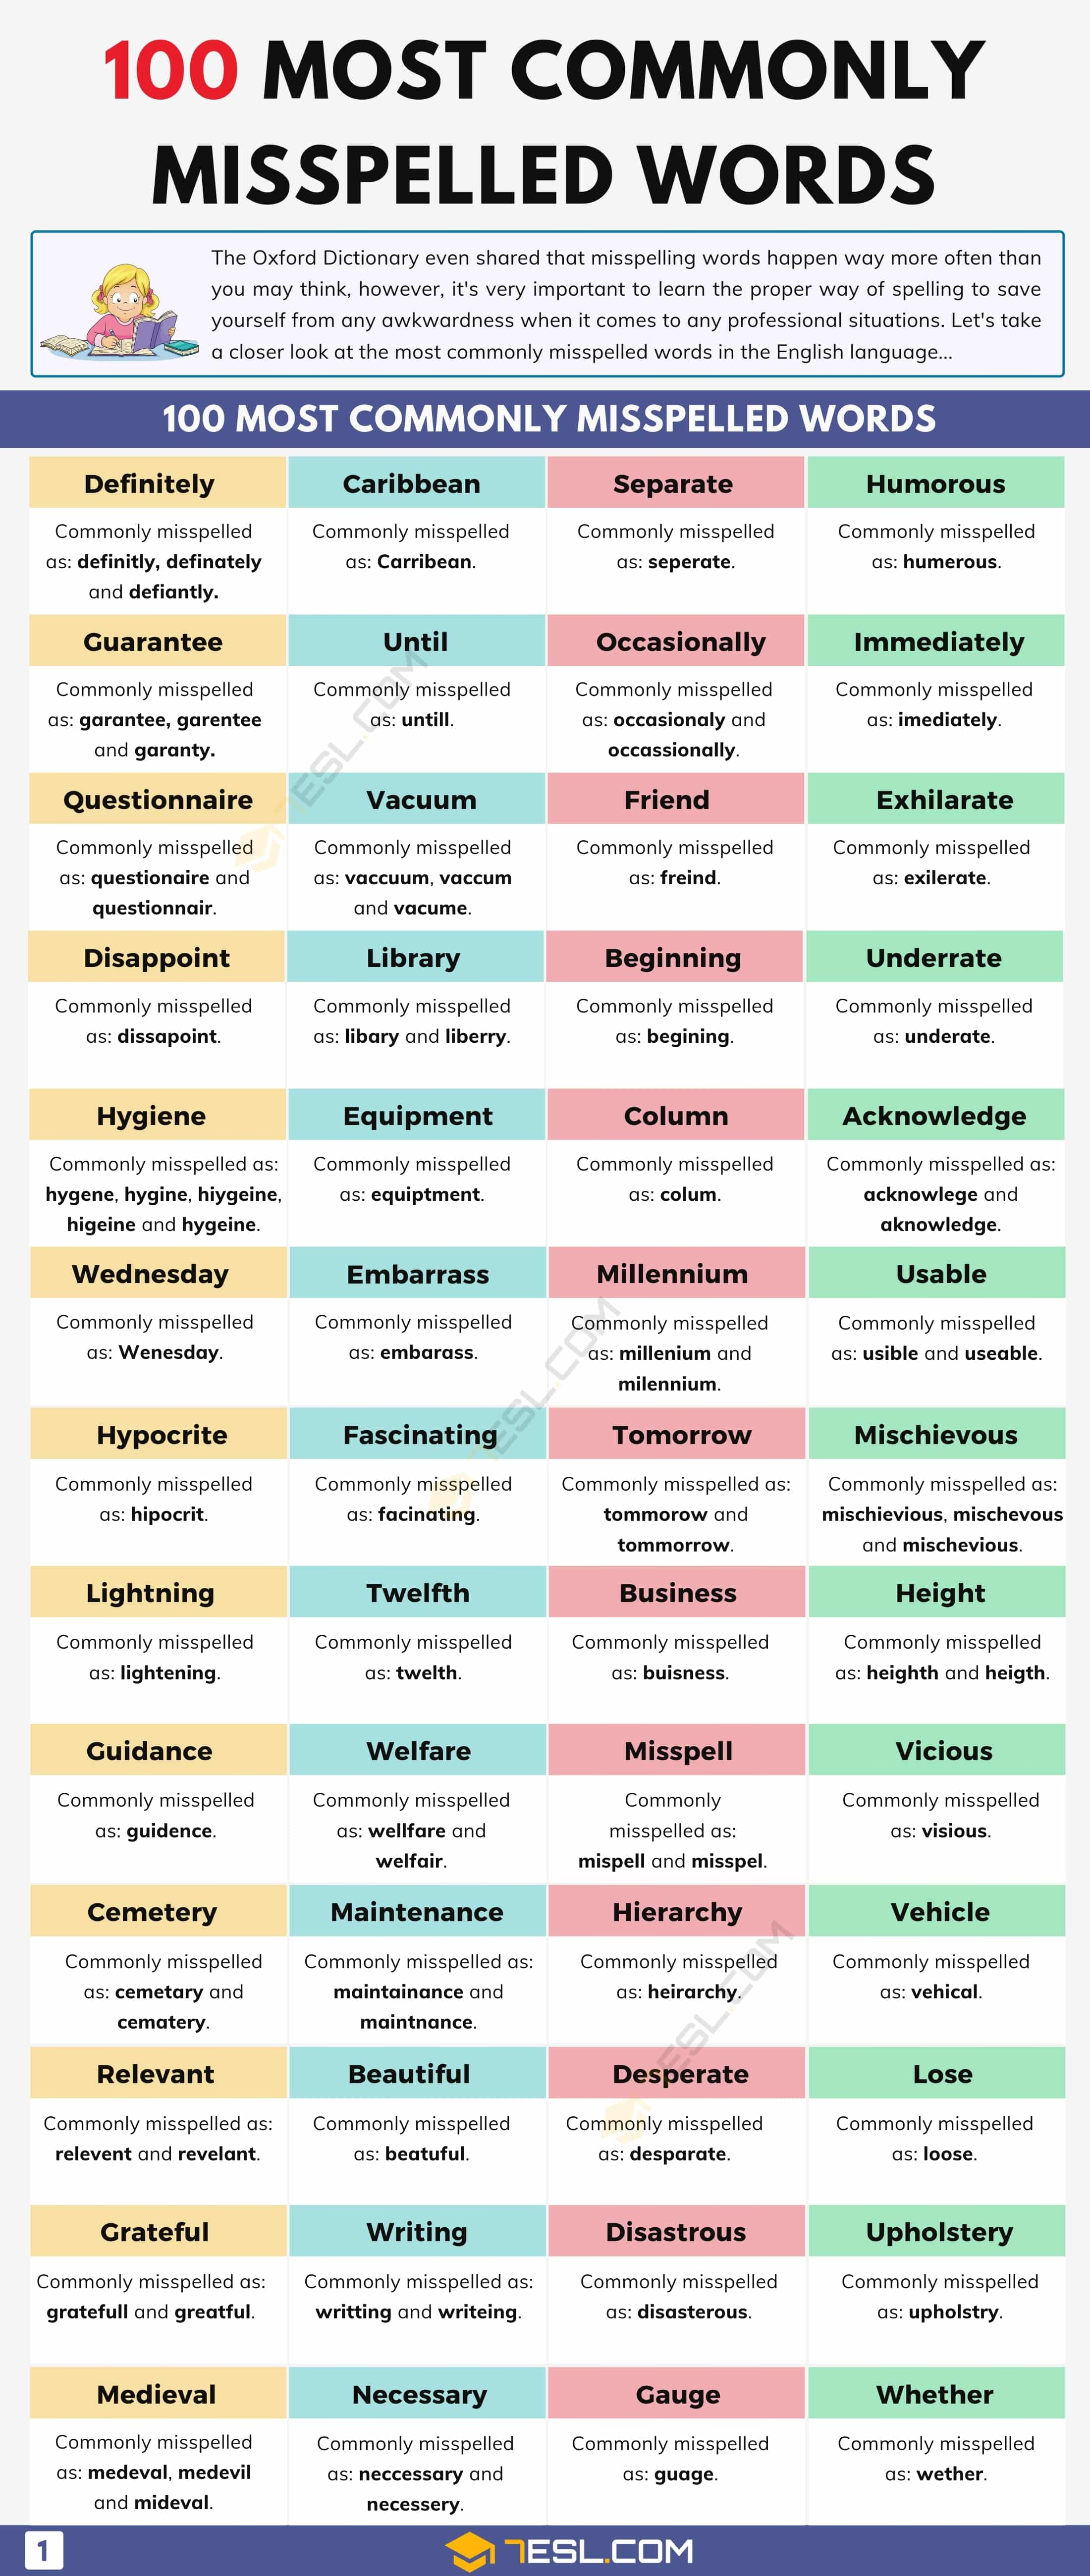 Top 100 Commonly Misspelled Words in the English Language